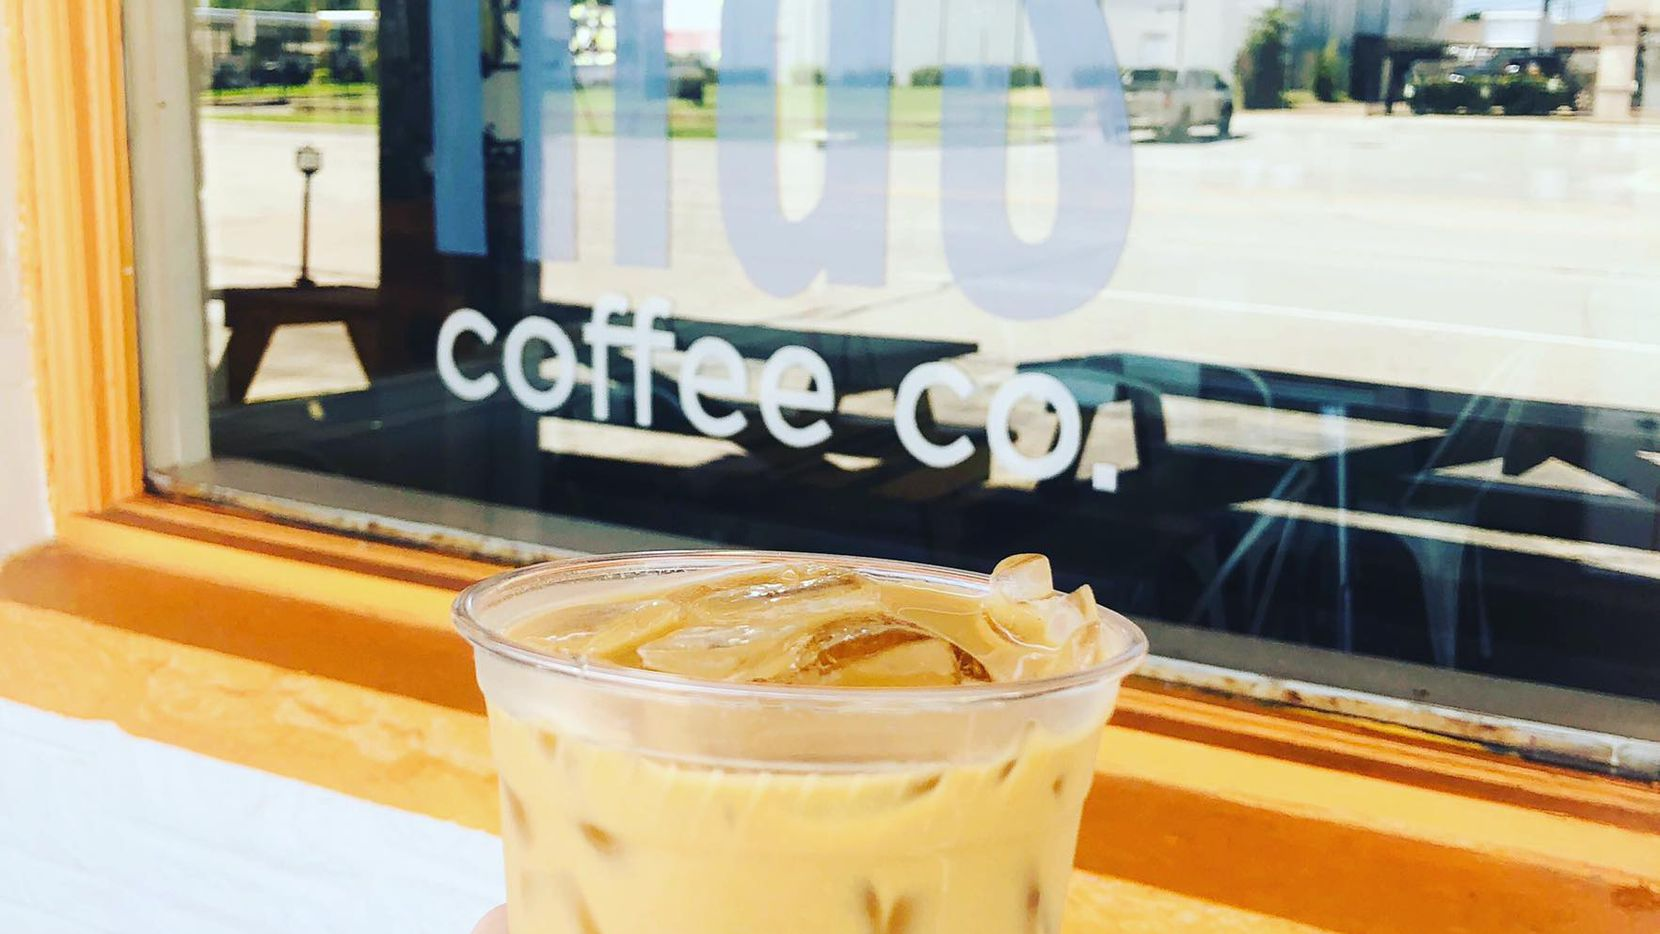 Mas Coffee Co. features locally roasted beans from Avoca Coffee Roasters in Fort Worth and is one of the places in Grand Prairie where you can celebrate National Coffee Day.